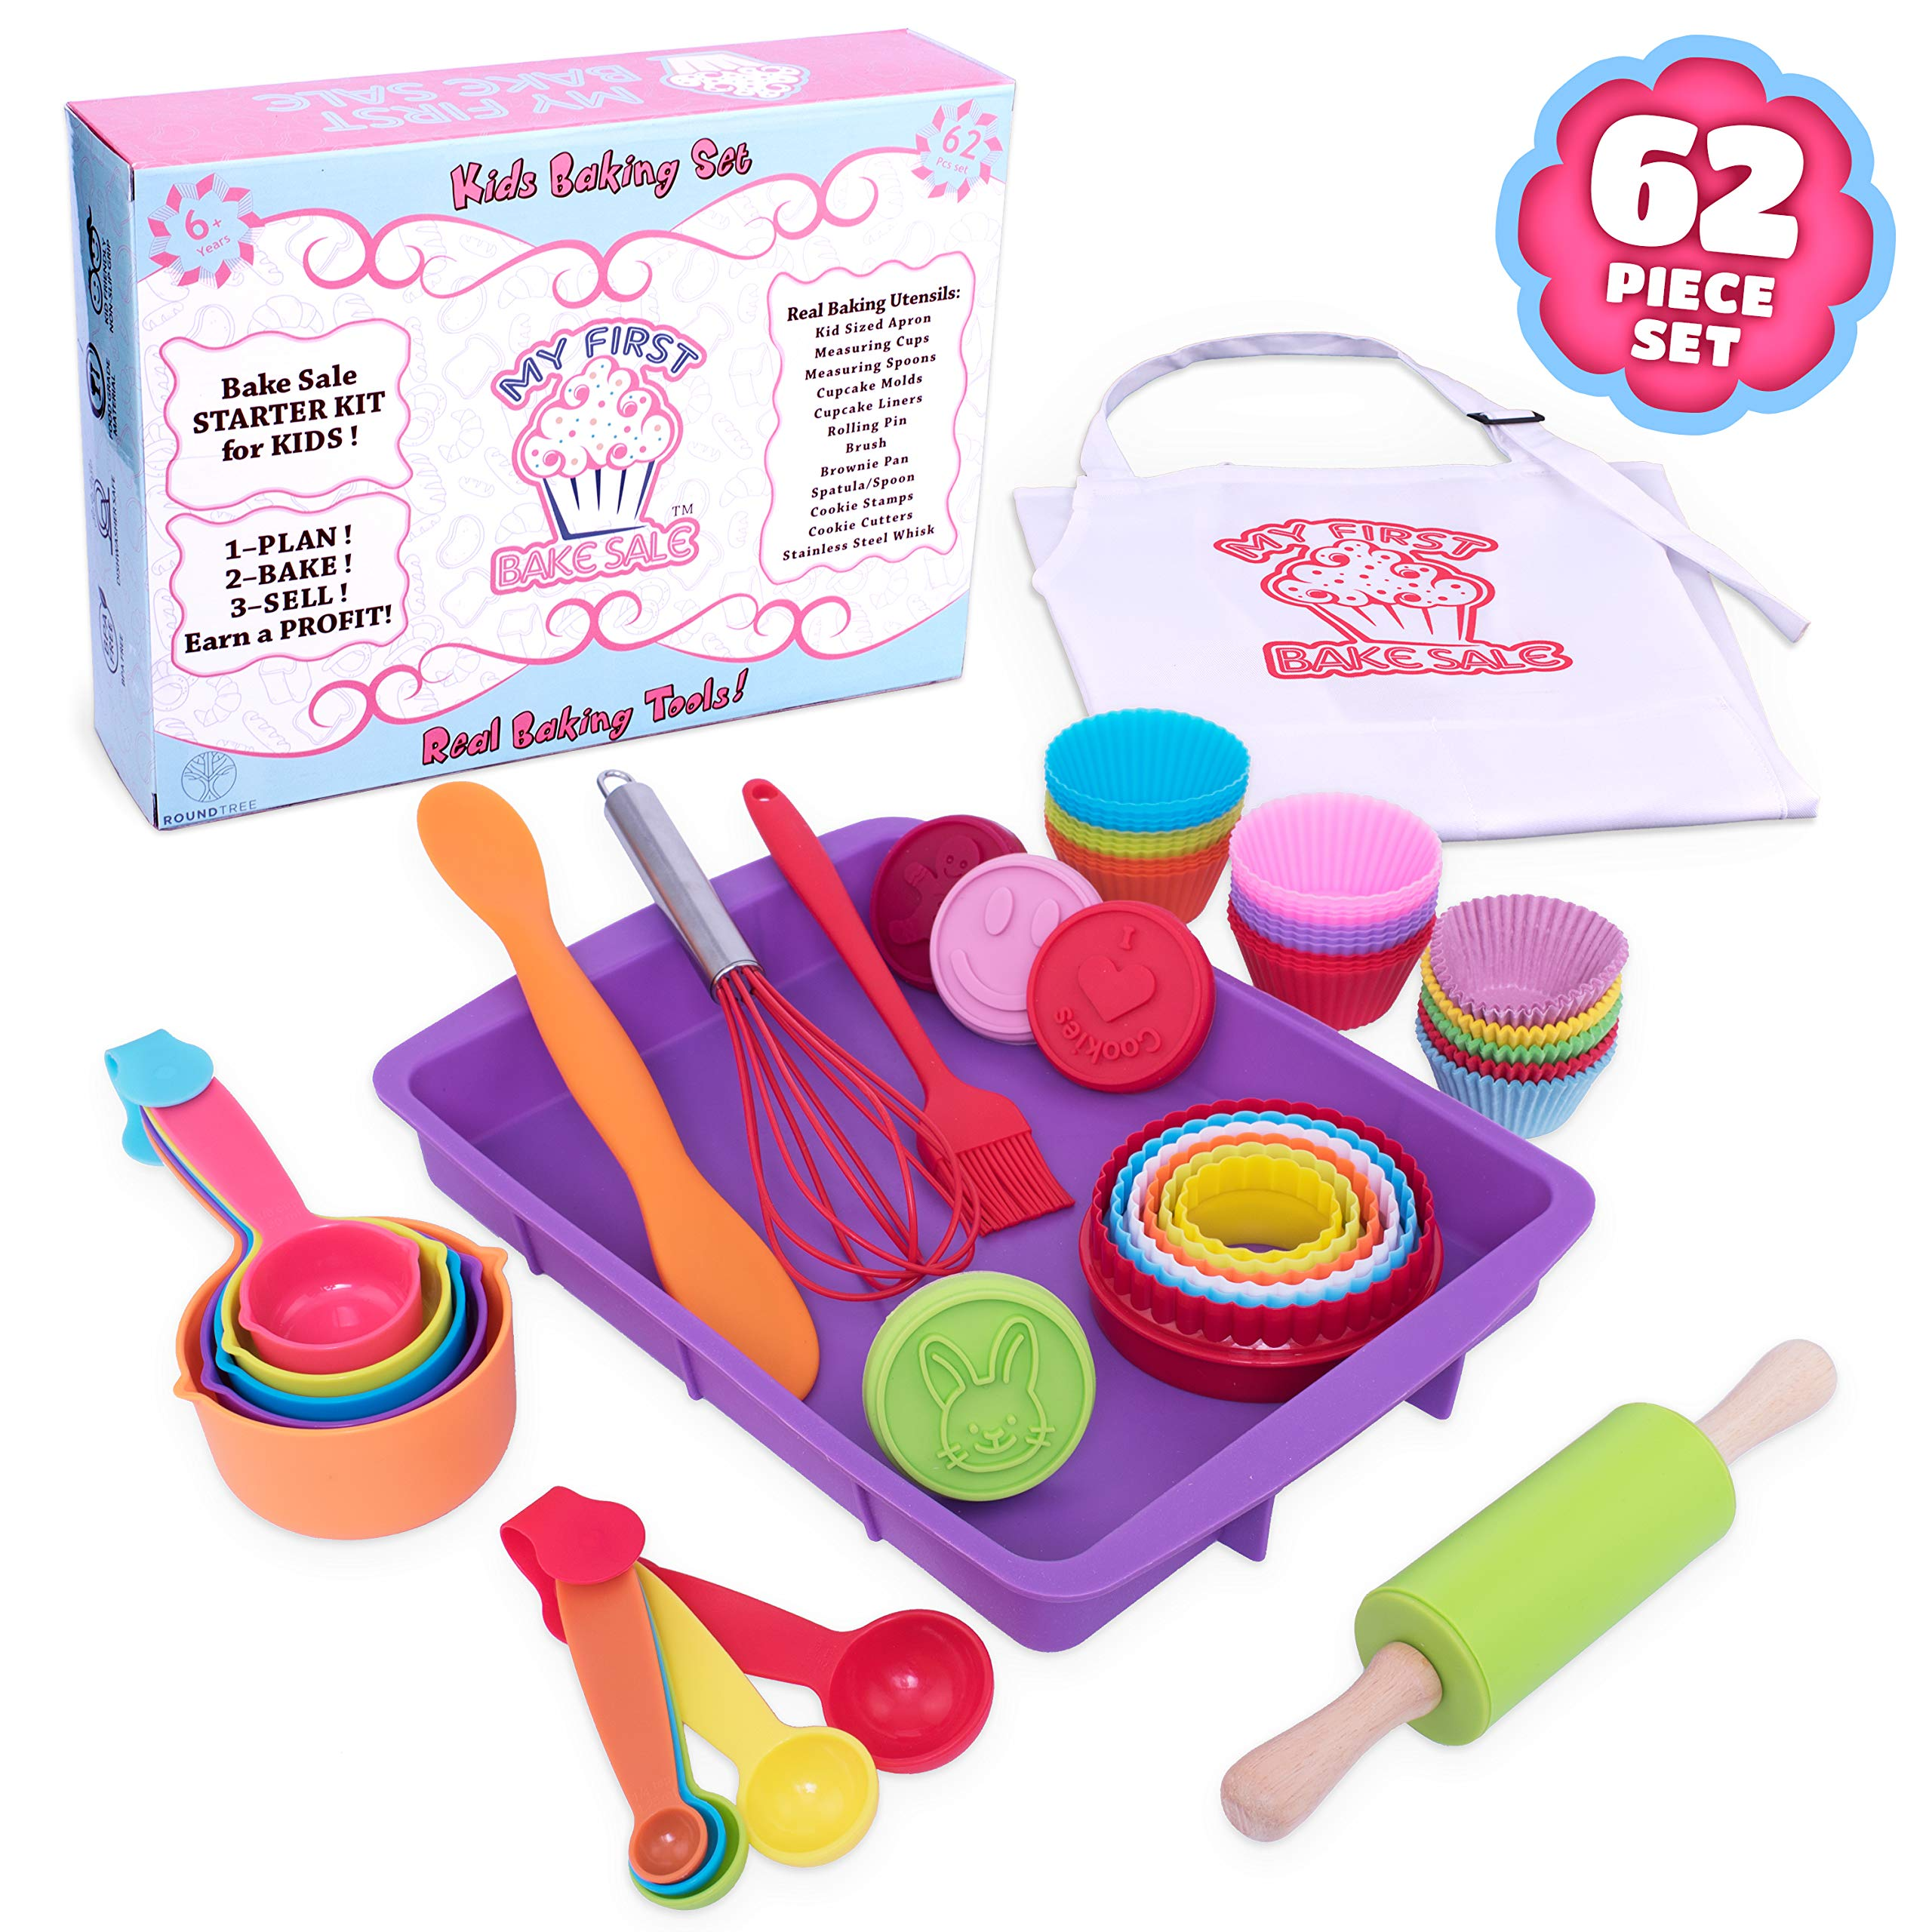 Roundtree My First Bake Sale Kids Baking Set, Kids Cooking Supplies for Making Pastries, Cupcakes, Cakes, Cookies. Ultimate 62 Piece Cooking Set for Kids, Cooking Utensils for Girls and Boys Age 6 Up